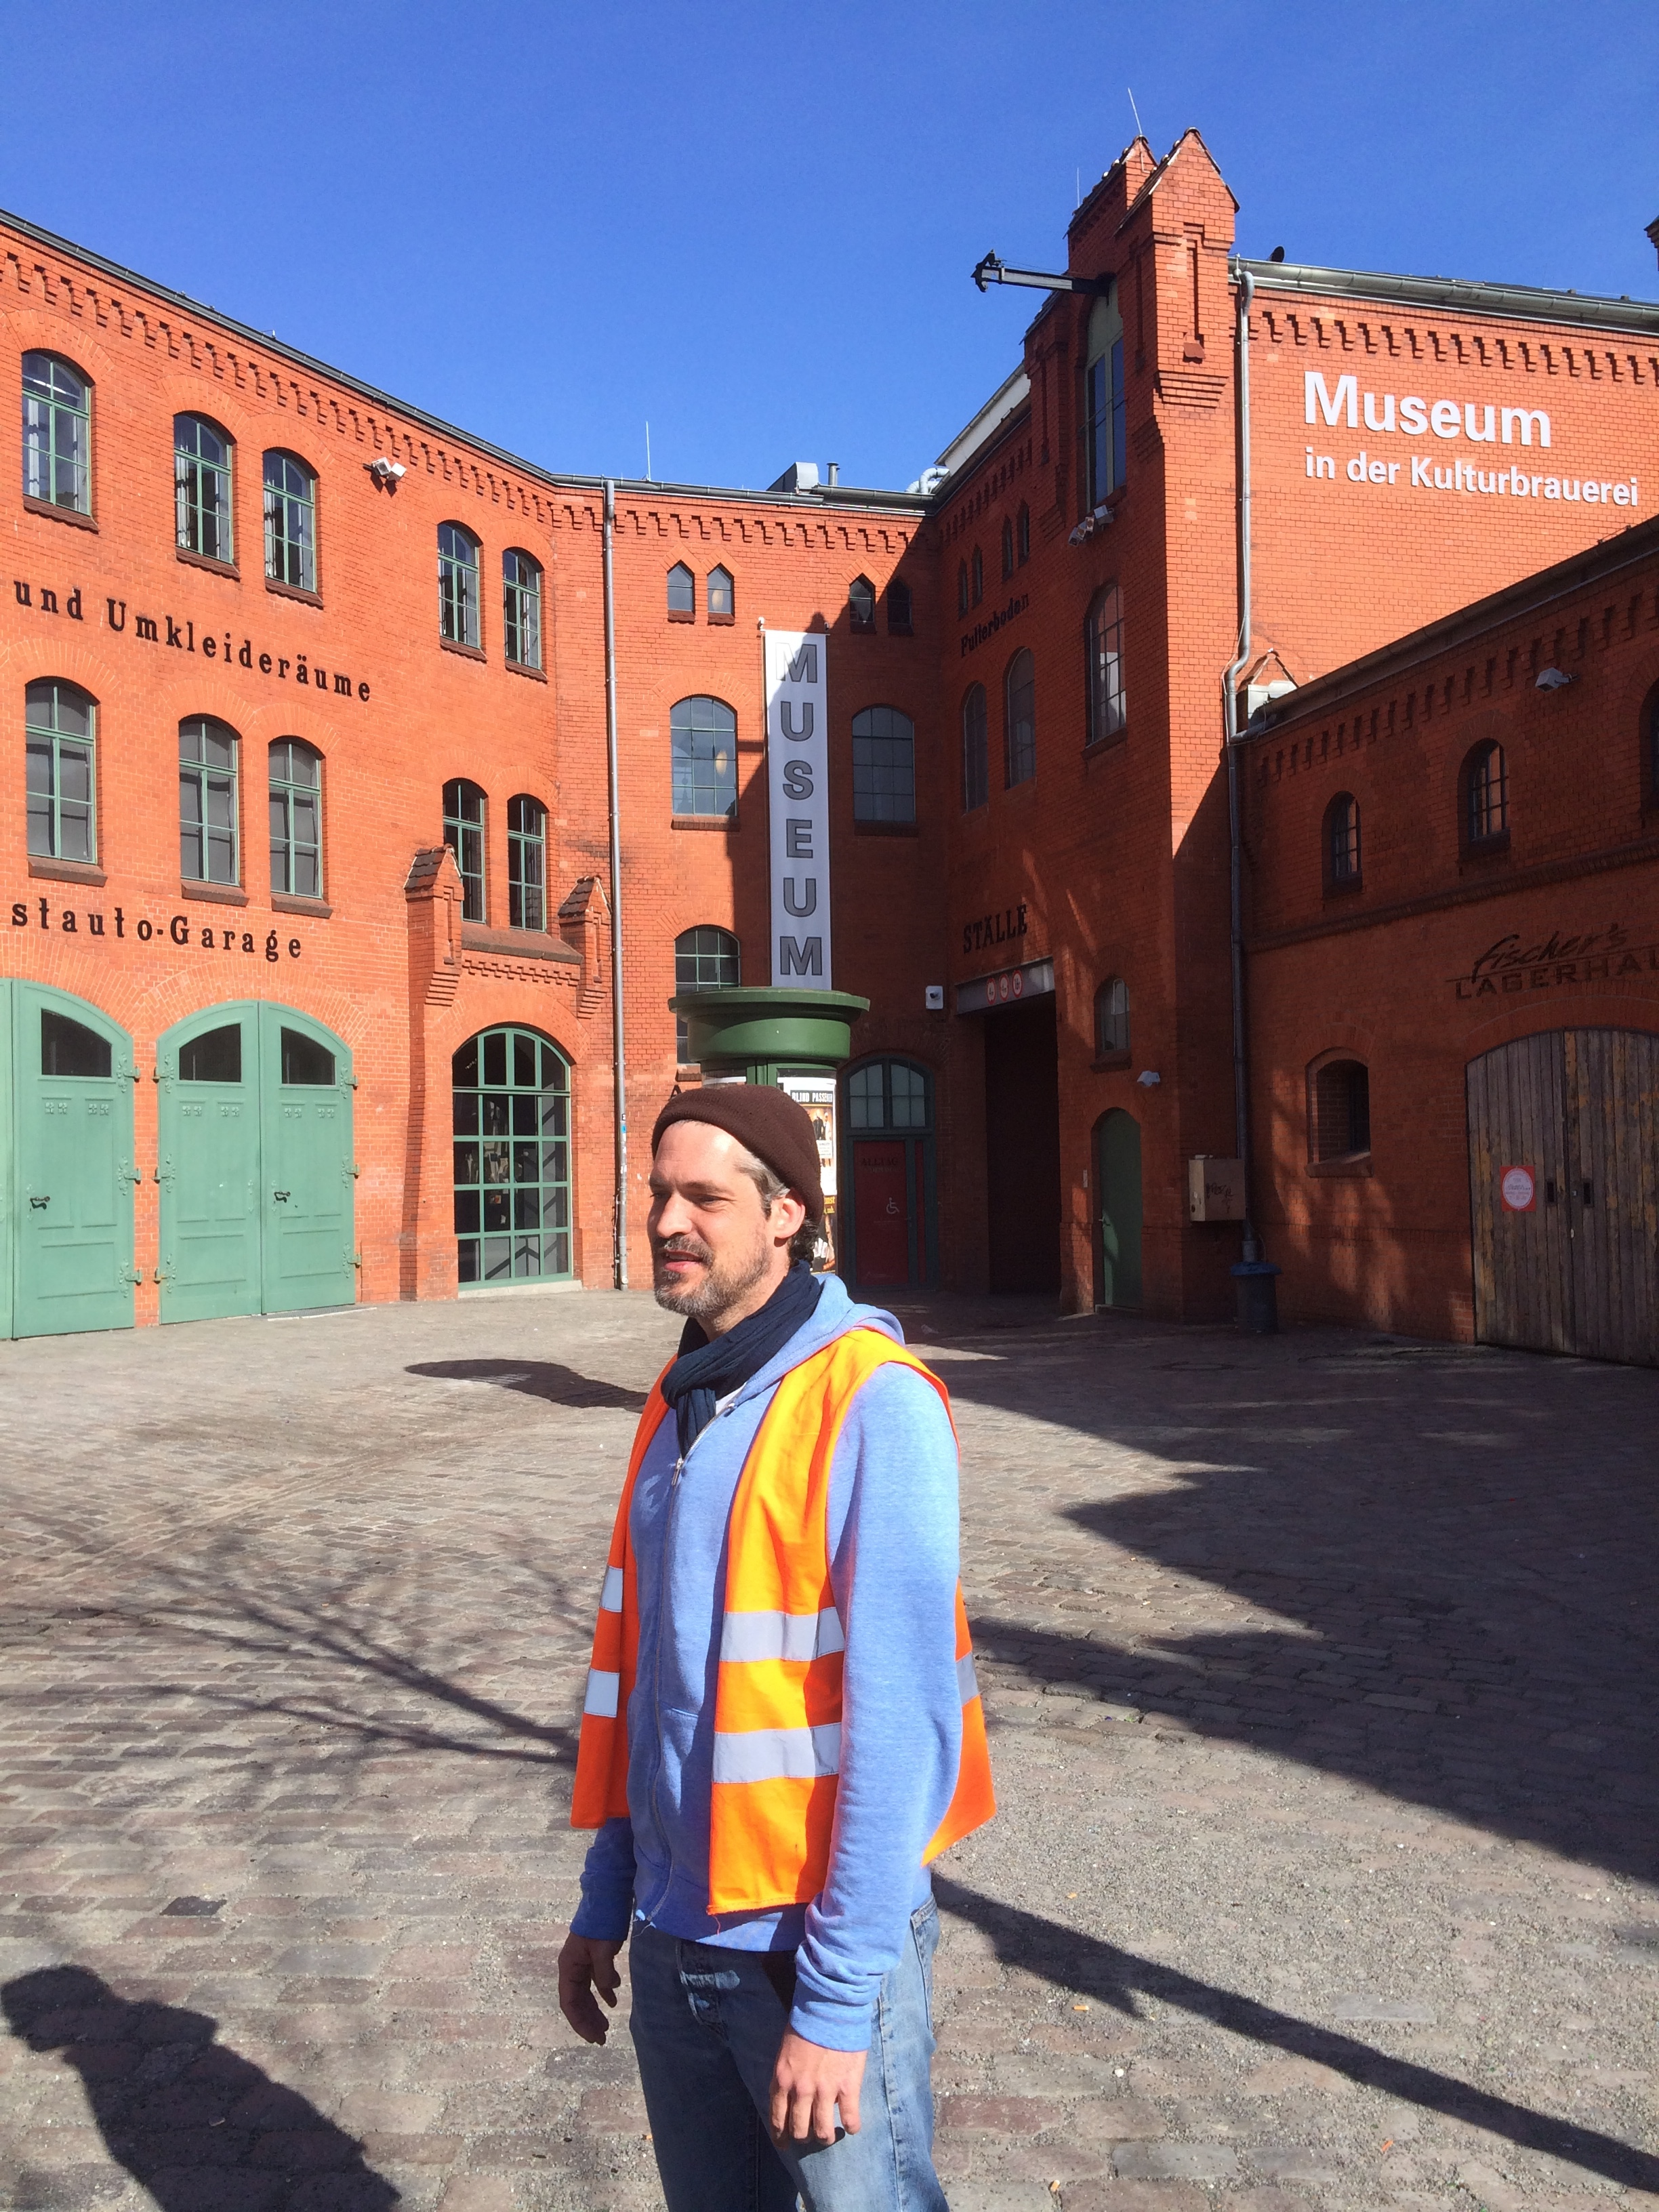 At the restored brewery complex where the tour departs from